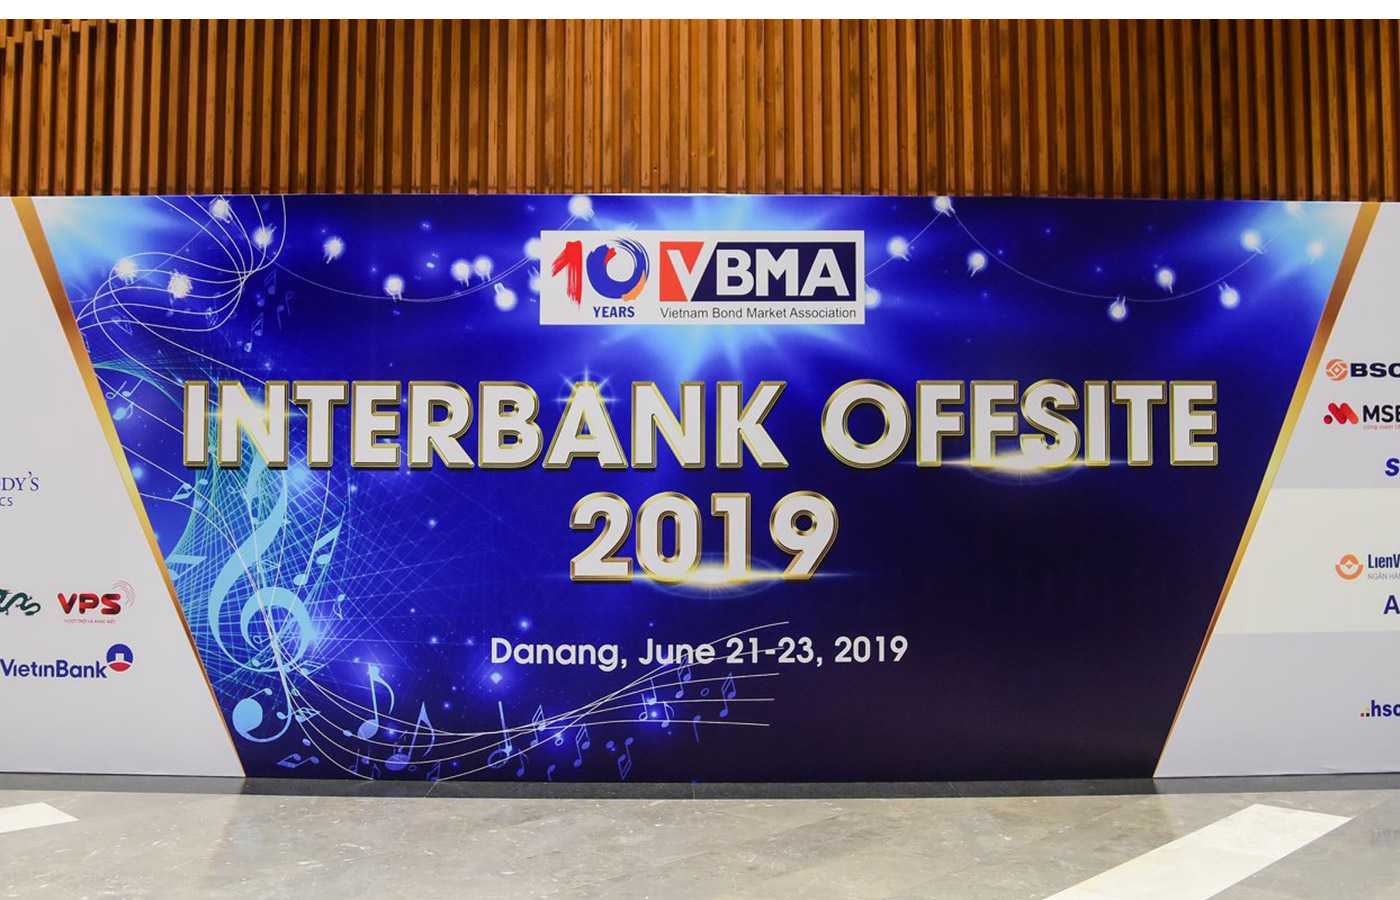 INTERBANK OFFSITE 2019